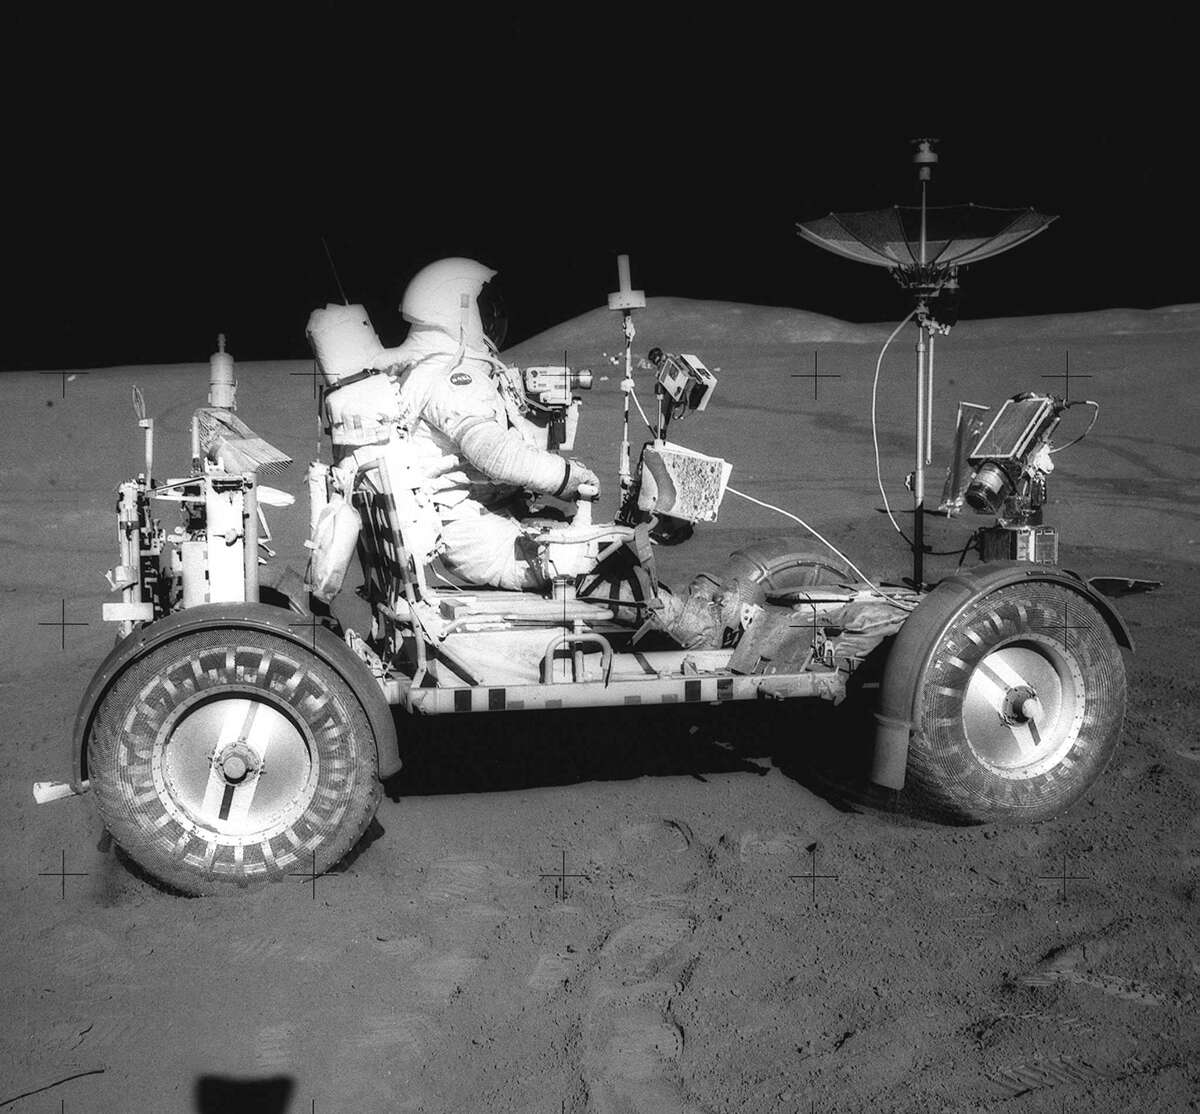 This 1971 photograph was taken during the Apollo 15 mission on the lunar surface. Astronaut David R. Scott waits in the Lunar Roving Vehicle (LRV) for astronaut James Irwin for the return trip to the Lunar Module, Falcon, with rocks and soil collected near the Hadley-Apernine landing site.